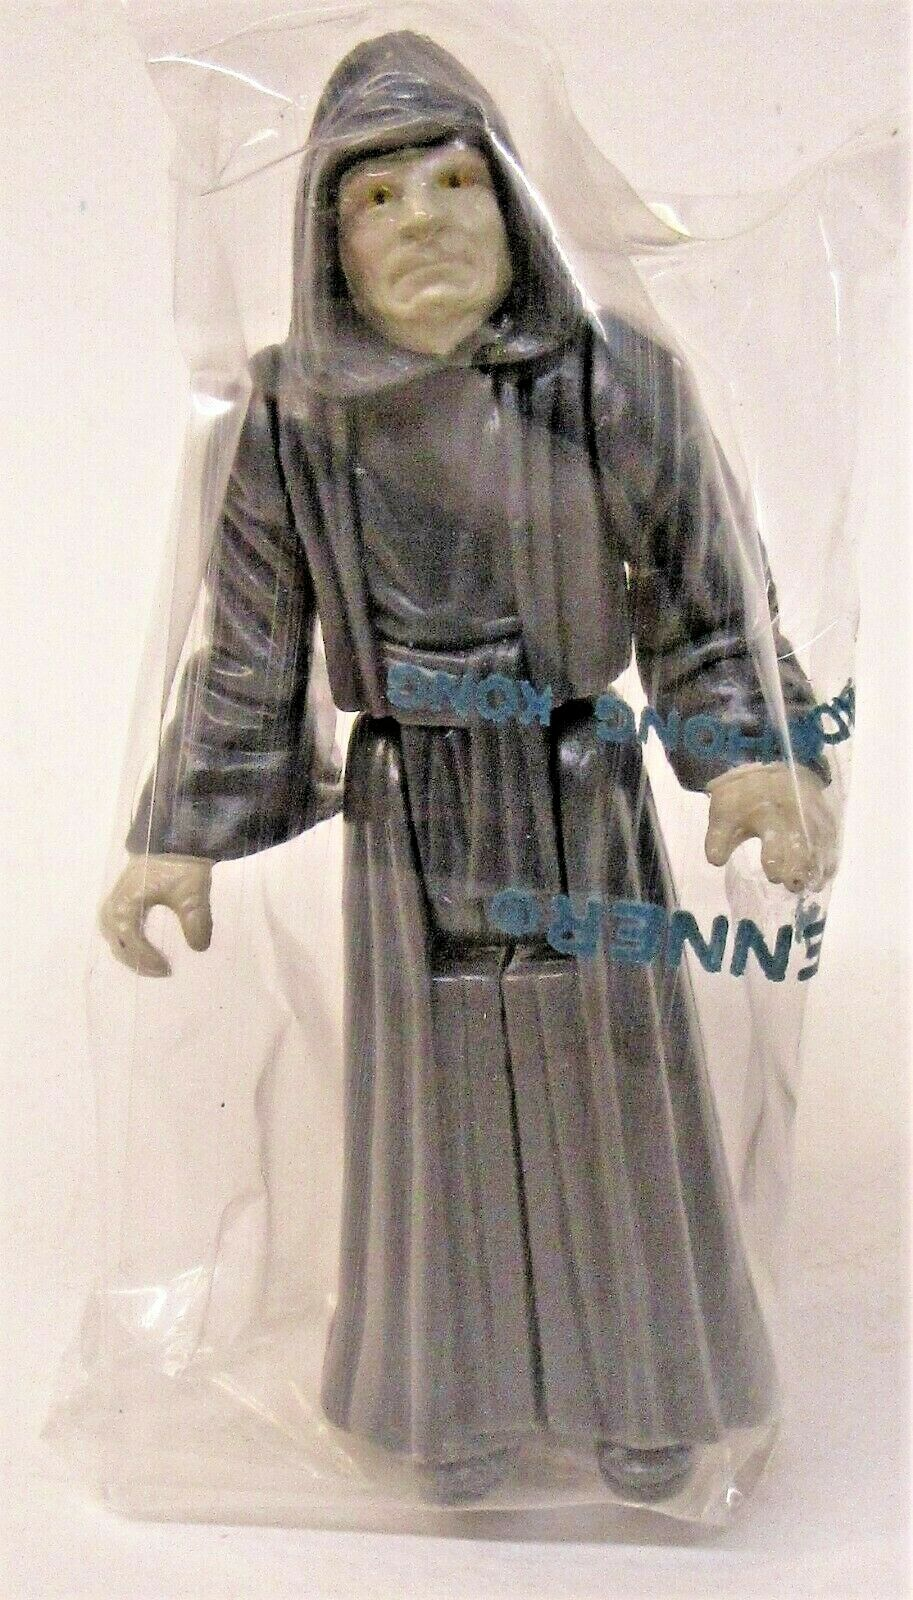 1983 Star Wars EMPEROR PALPATINE Mail Away Action Figure Kenner MINT in box